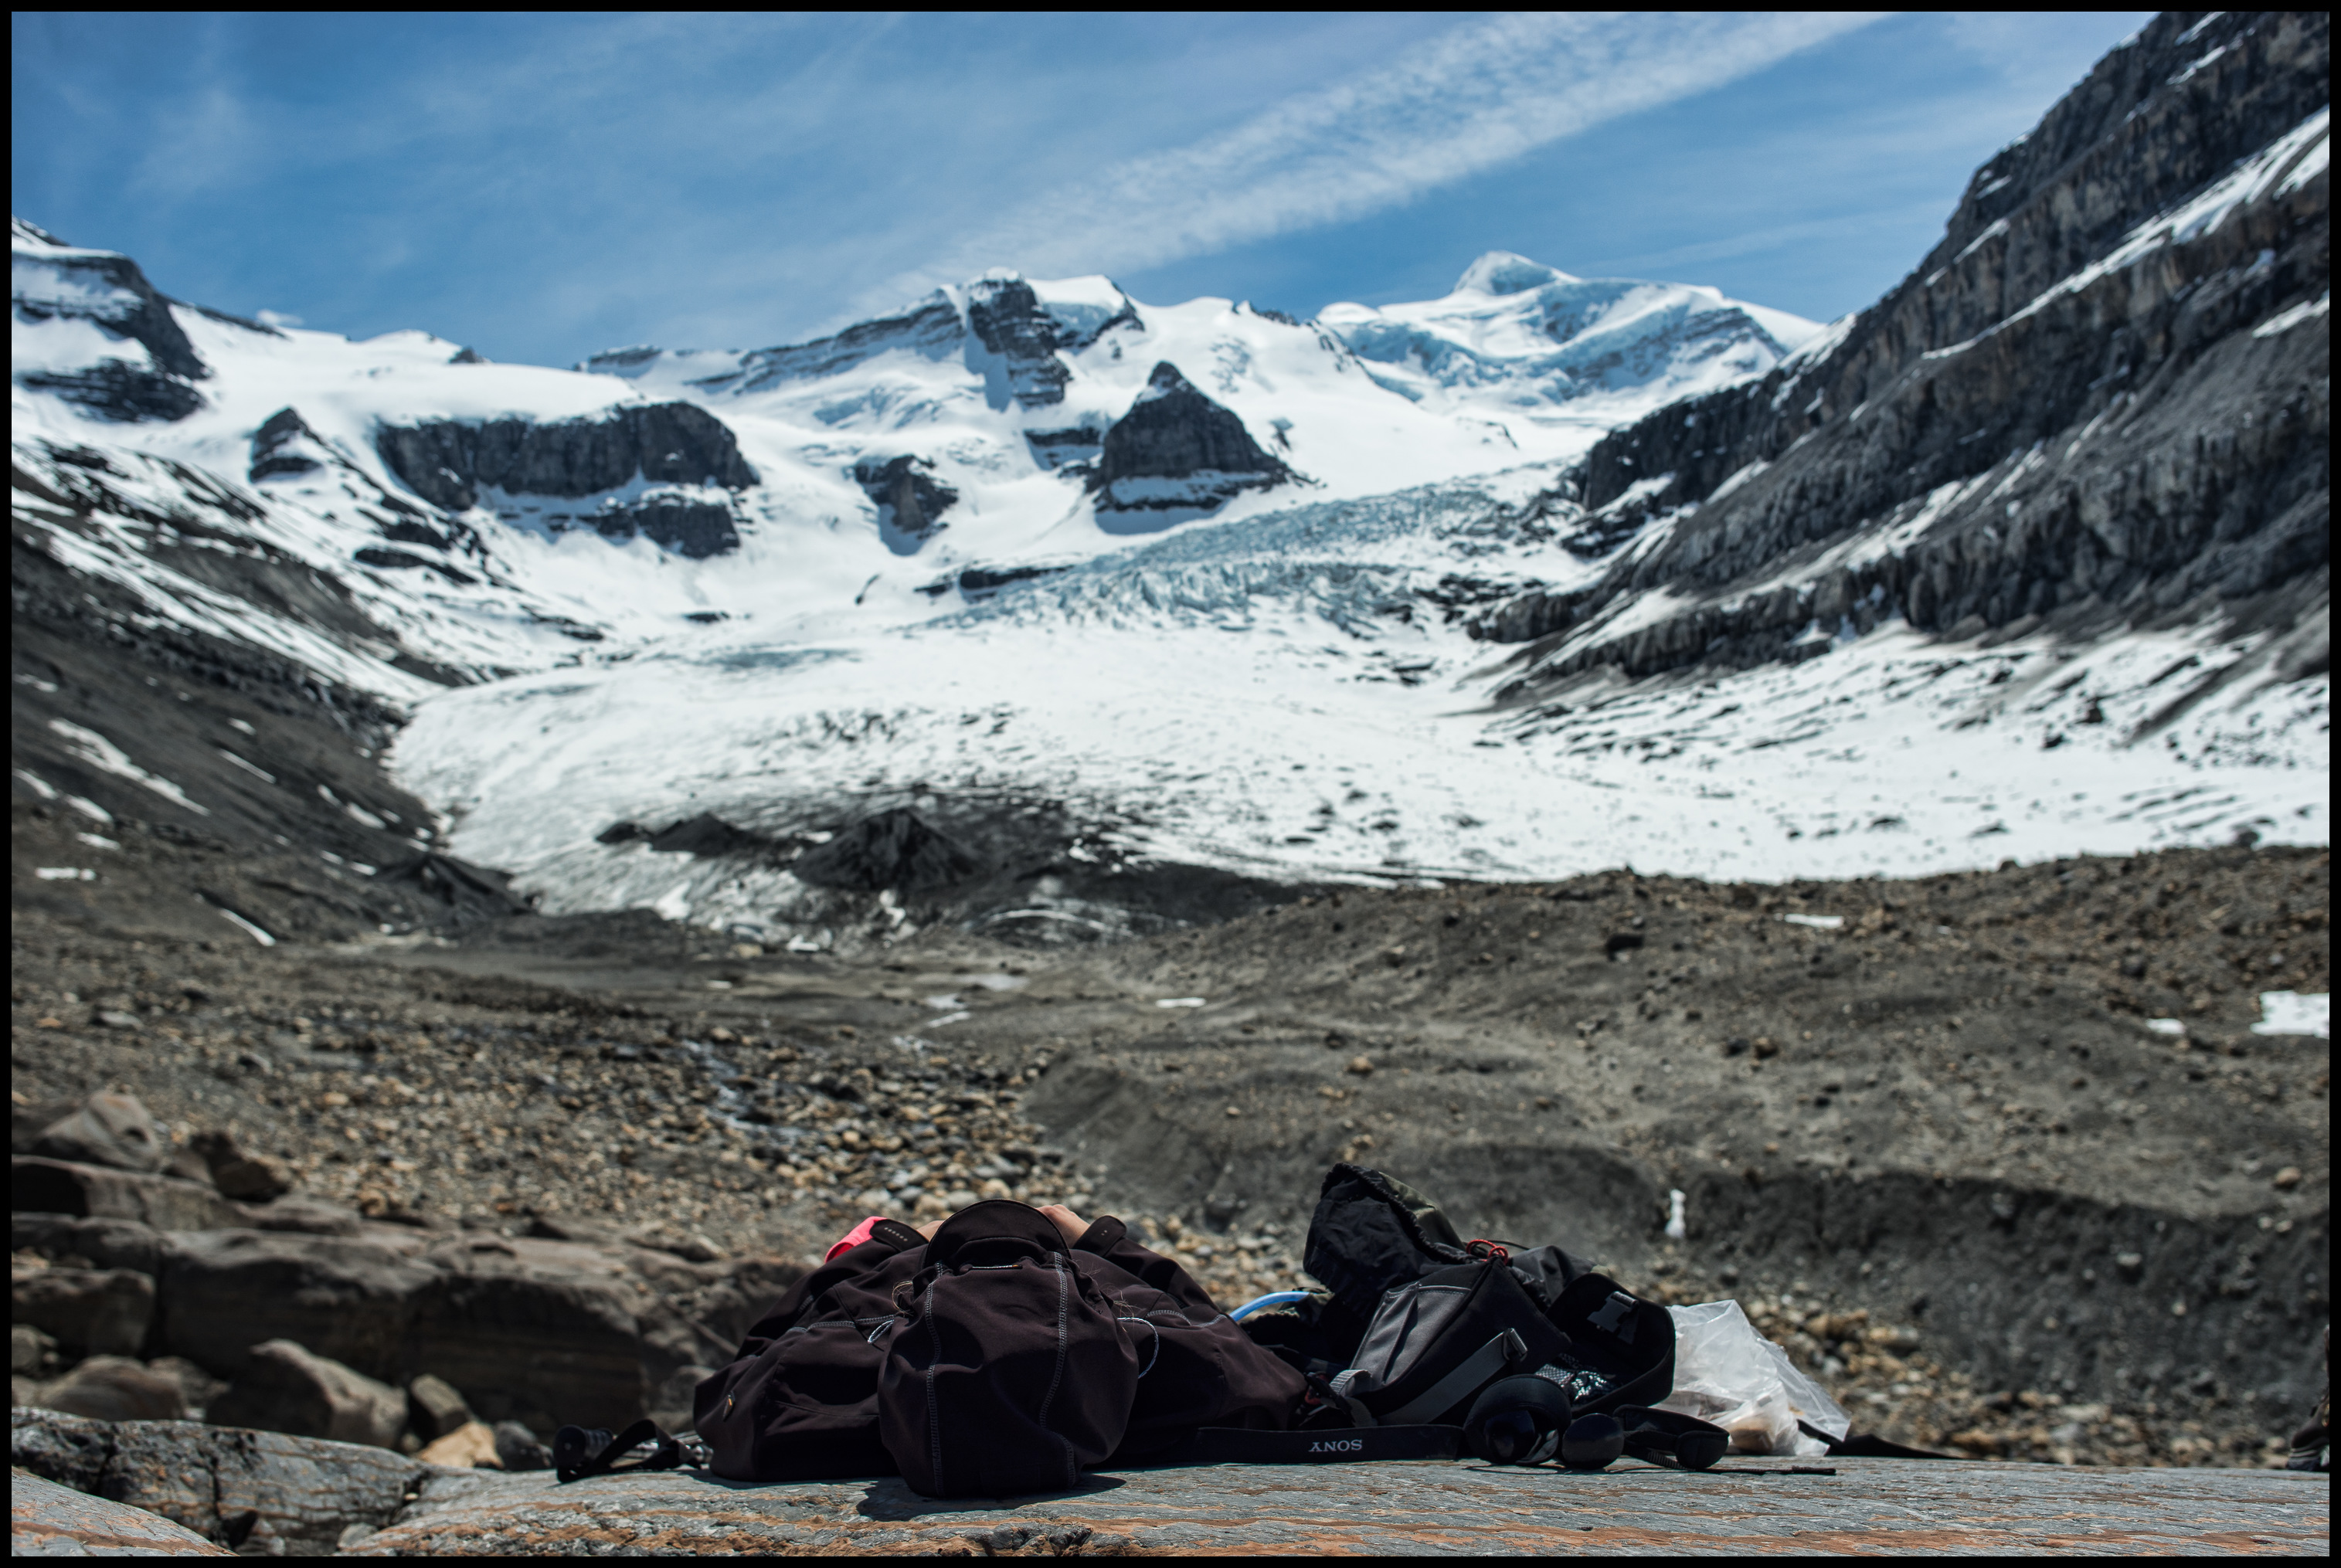 Taking a nap at the foot of Robson glacier, Berg Lake Sony A7 / Canon FD Tilt Shift 35 2.8